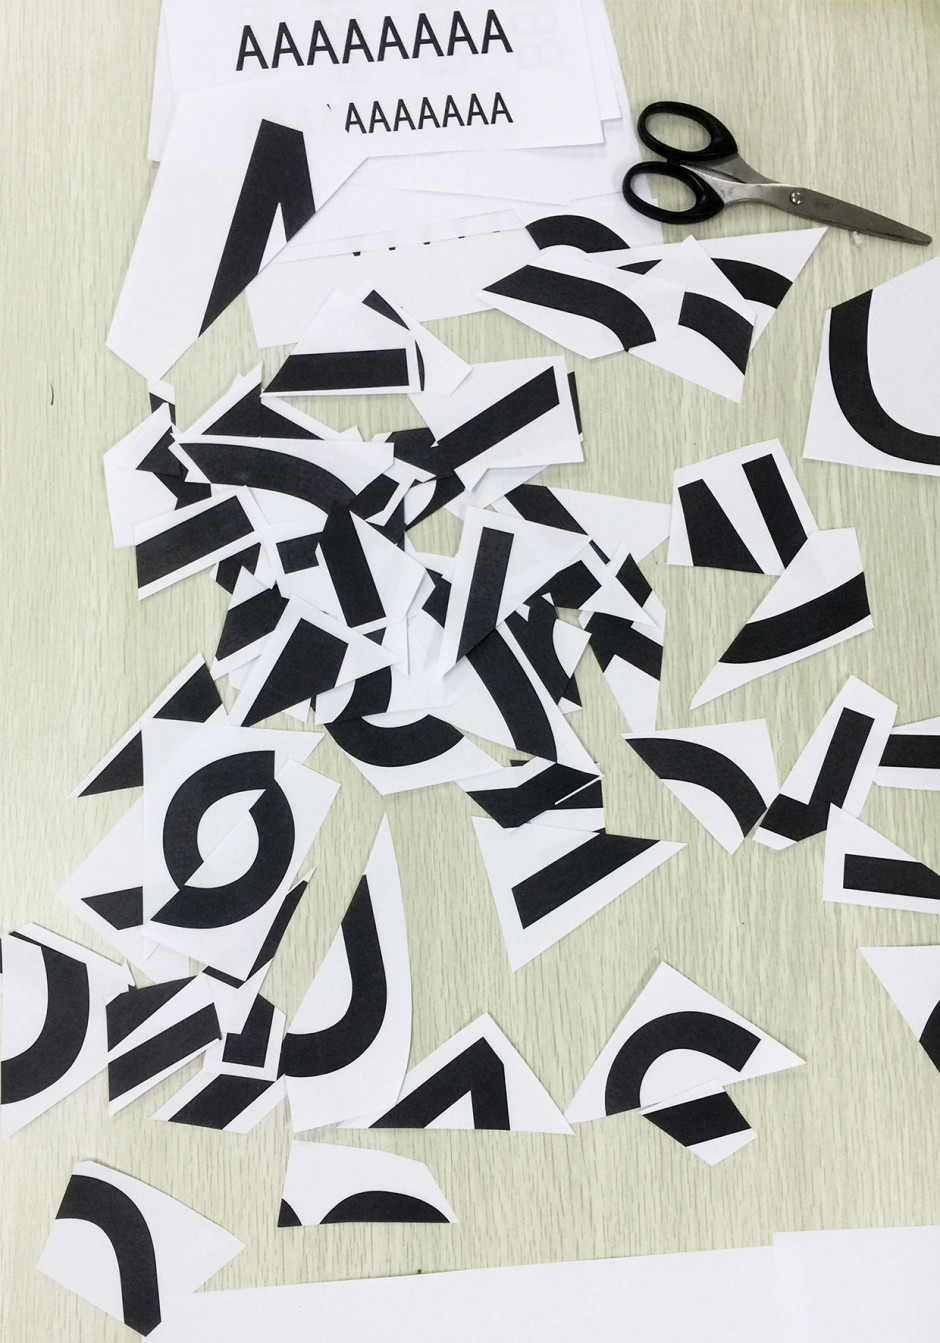 Tingwei Xing – Letter Reconstruction